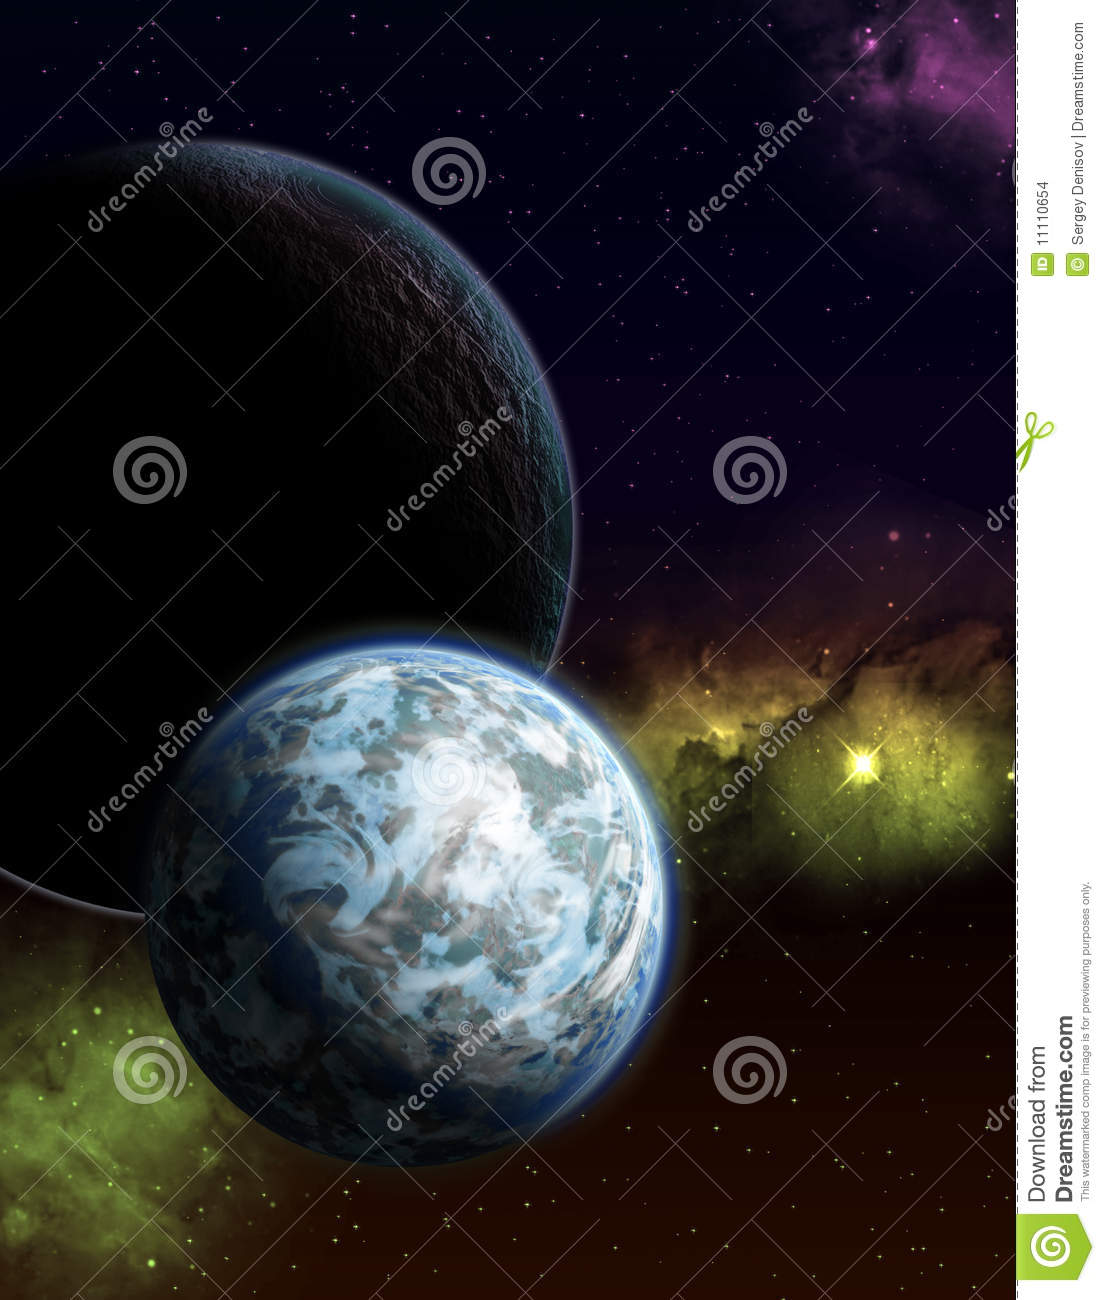 starry sky with planets - photo #23